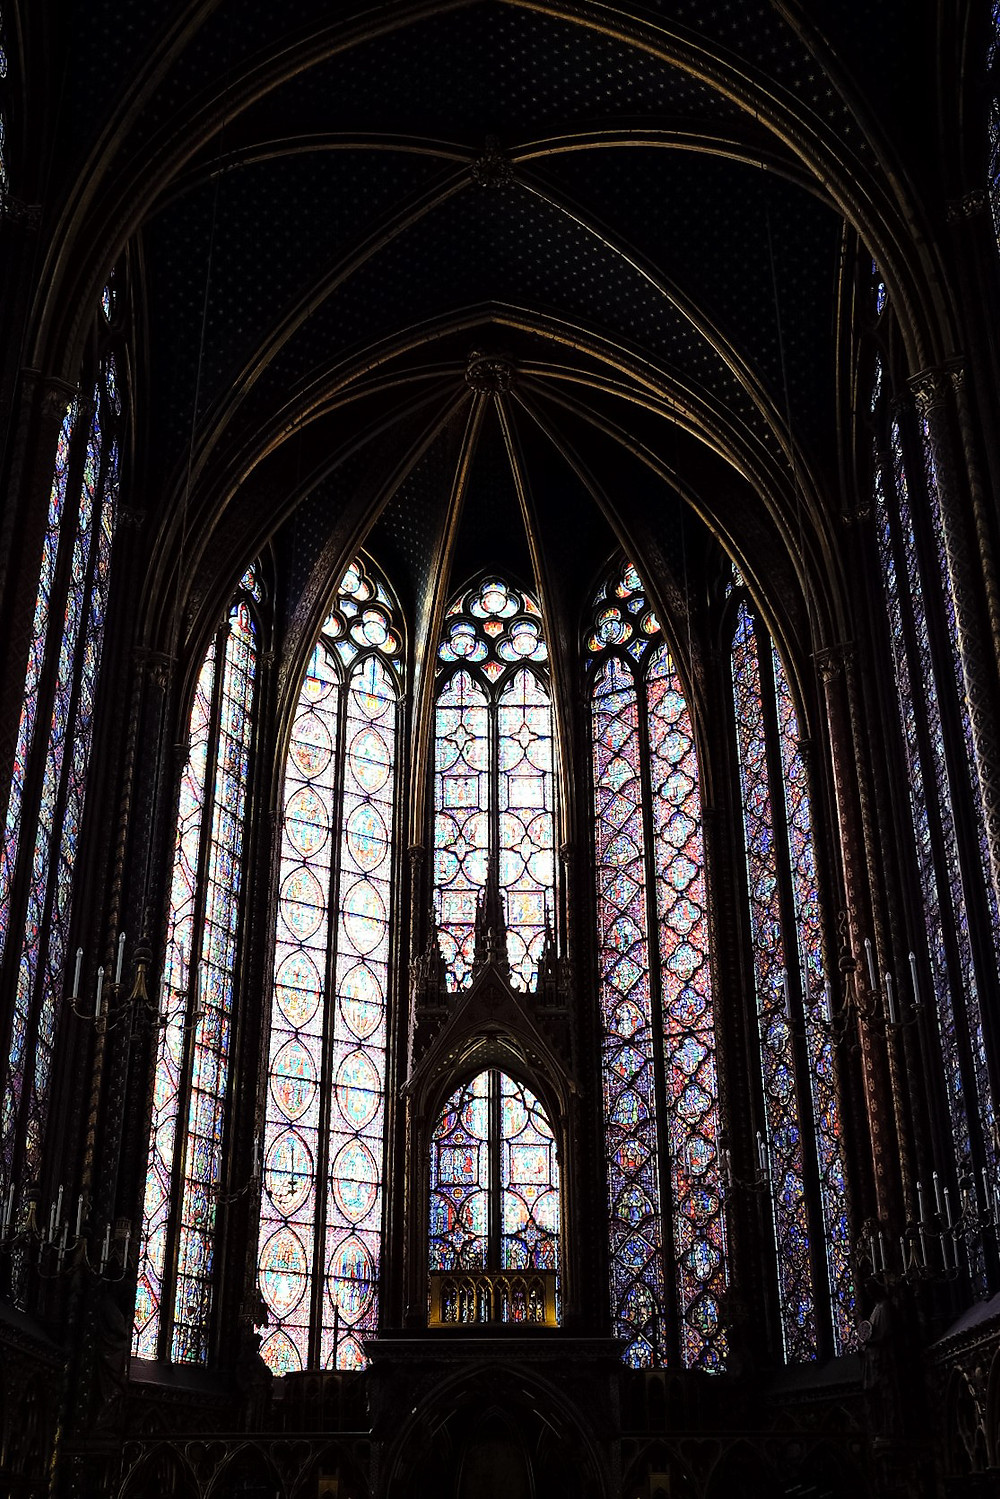 stainglass at Sainte Chapelle